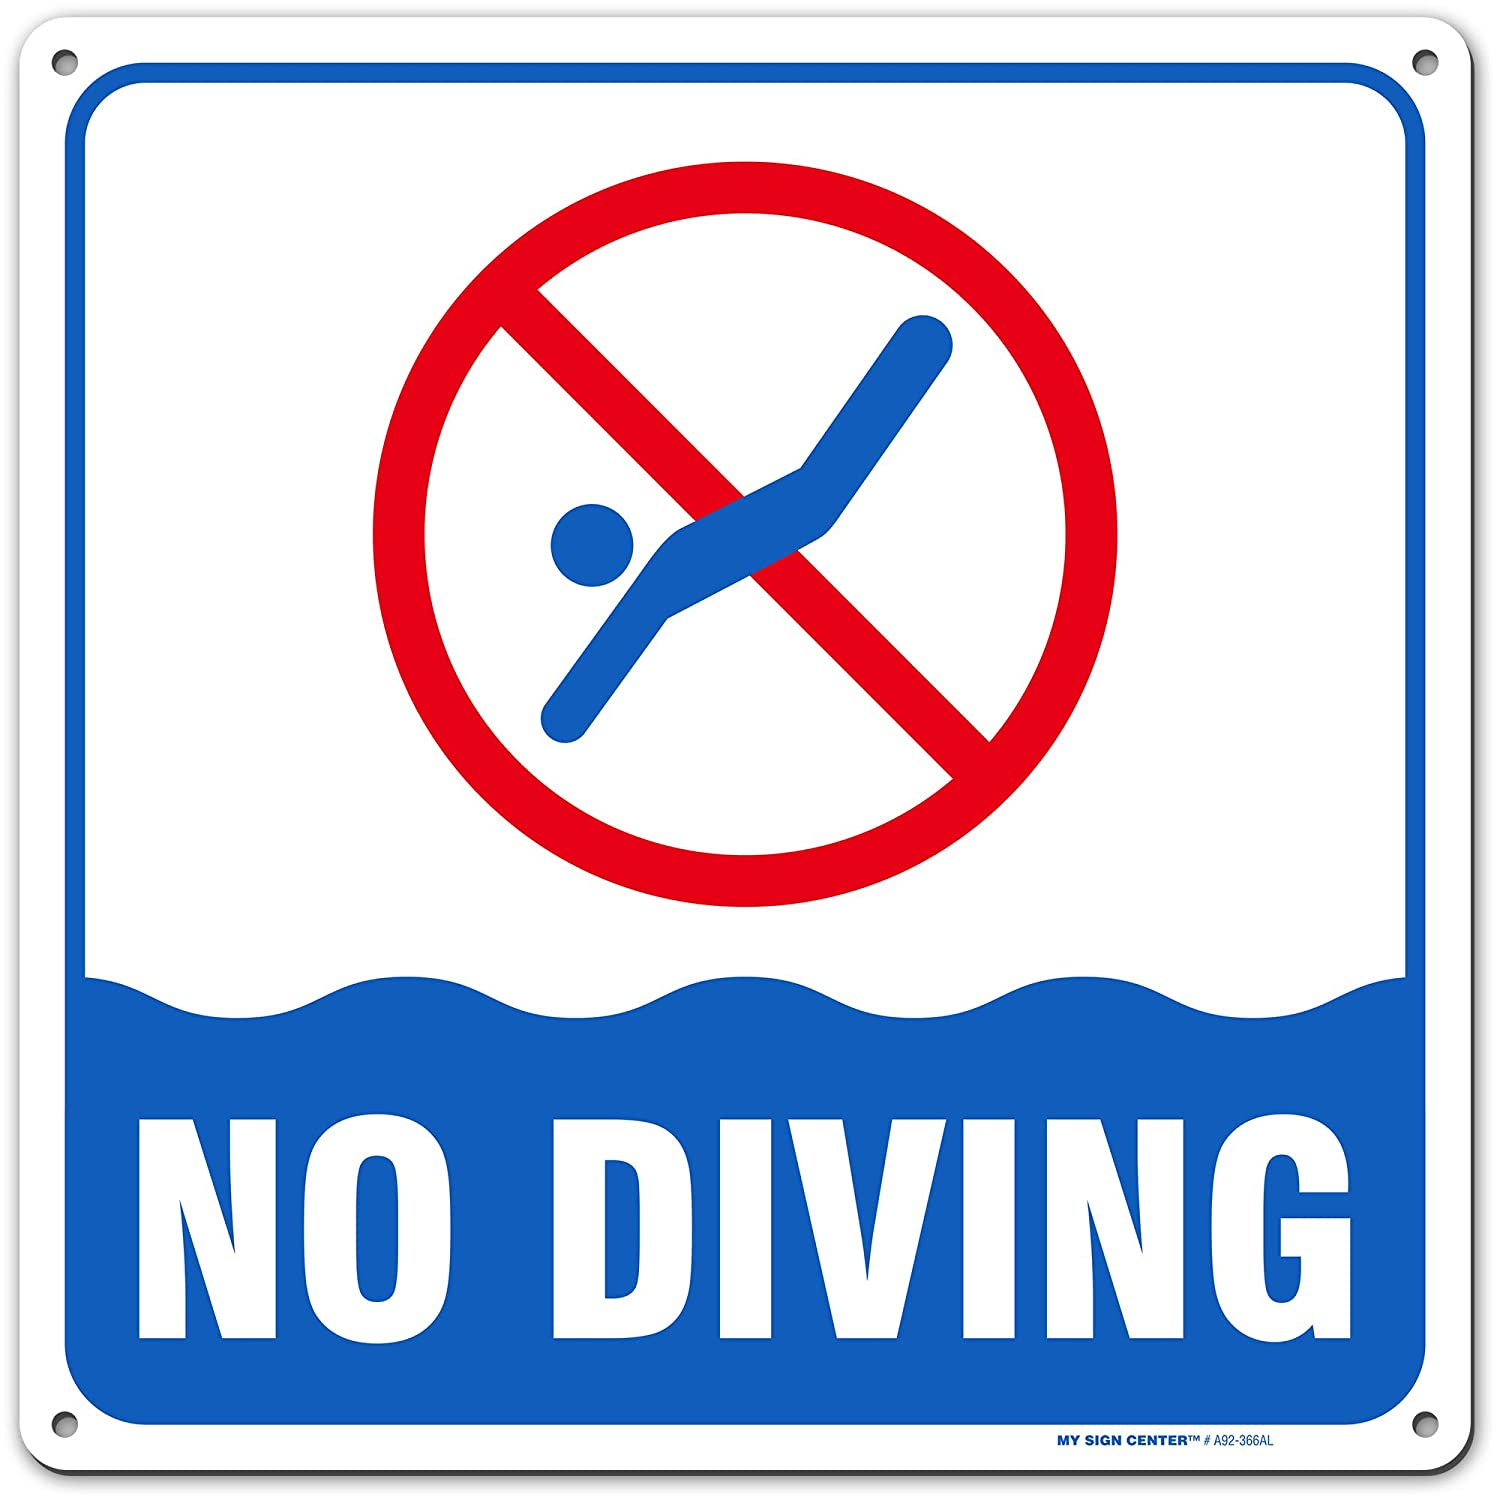 "No Diving Pool Sign, Pool Safety Warning, Indoor and Outdoor Rust-Free Metal, 12"" X 12"" - by My Sign Center, A92-366AL"